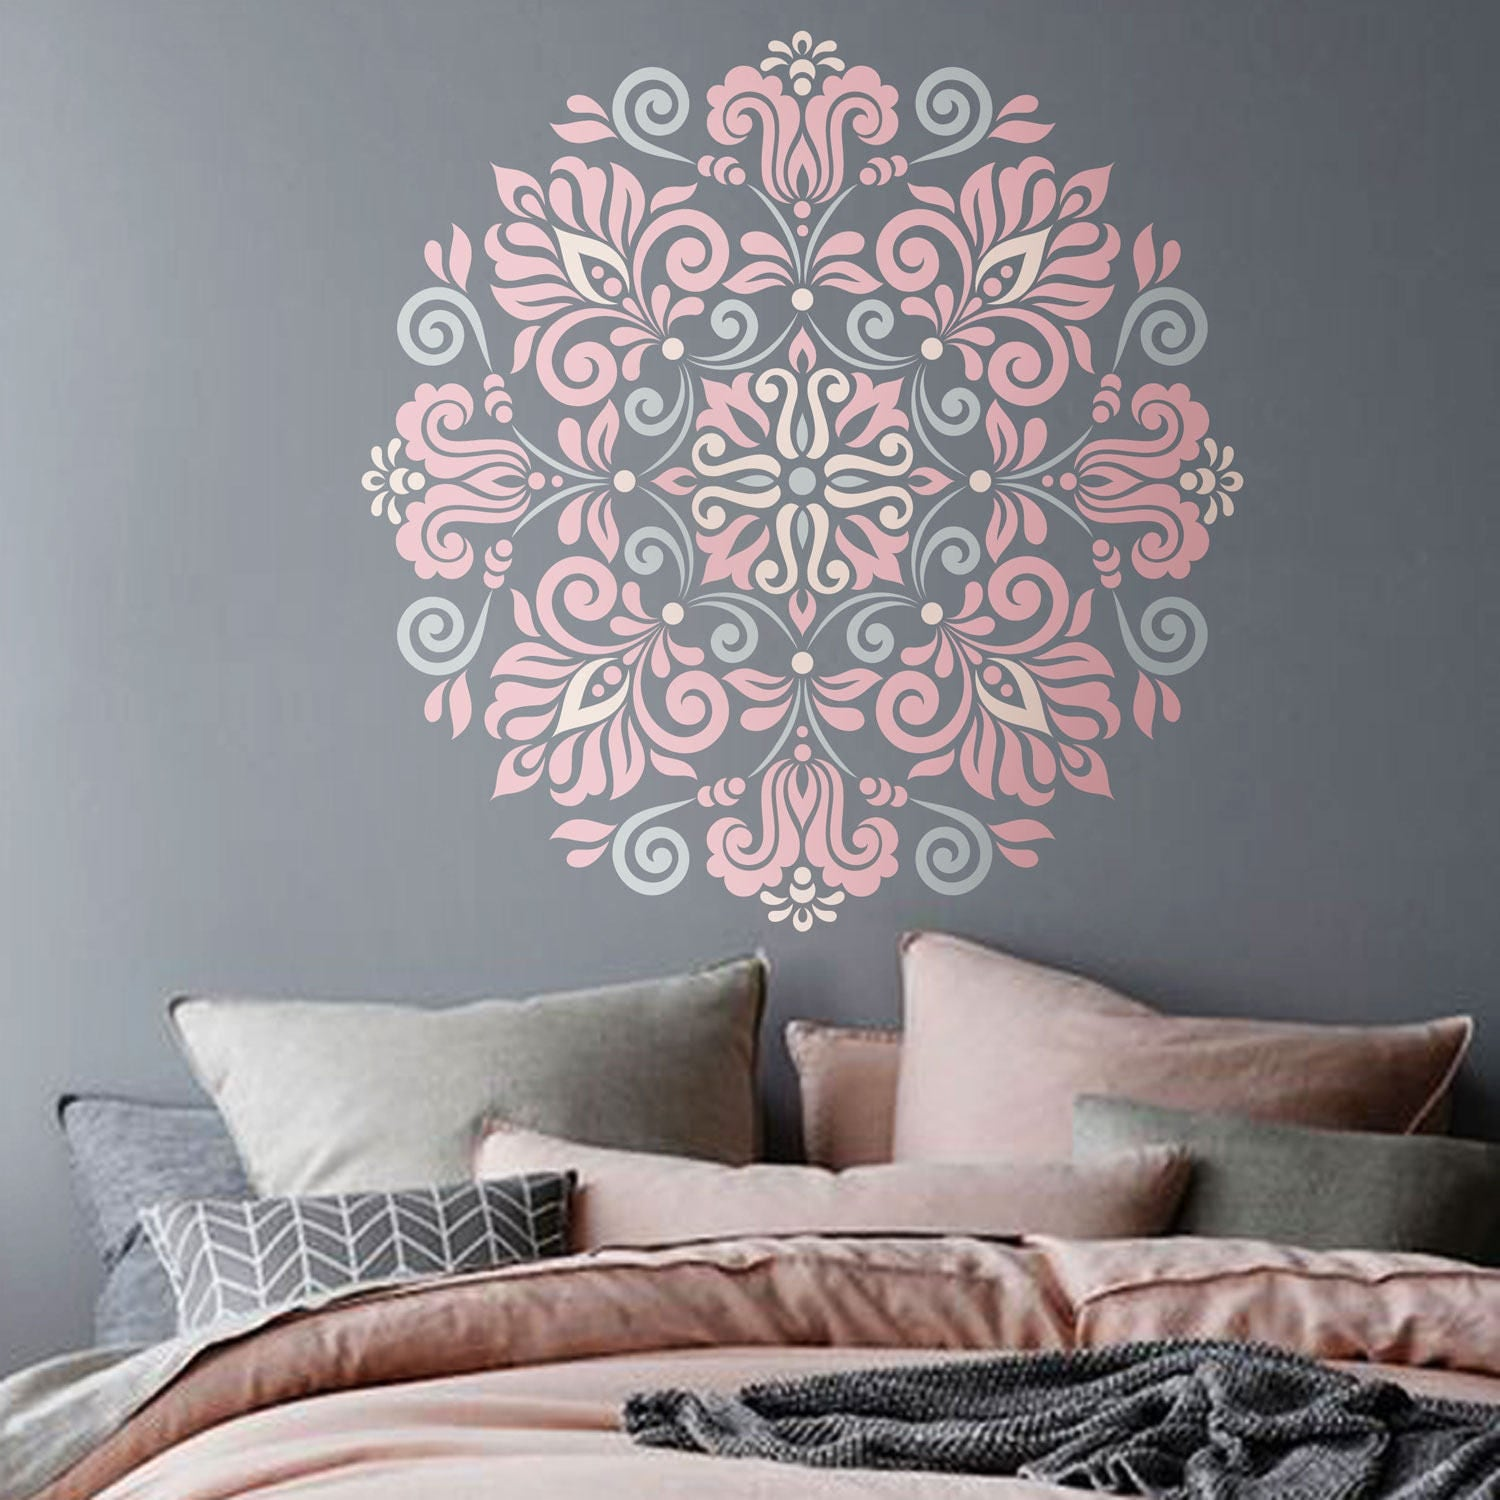 Mandala stencil tribal pattern for diy wall decor modern home zoom amipublicfo Images